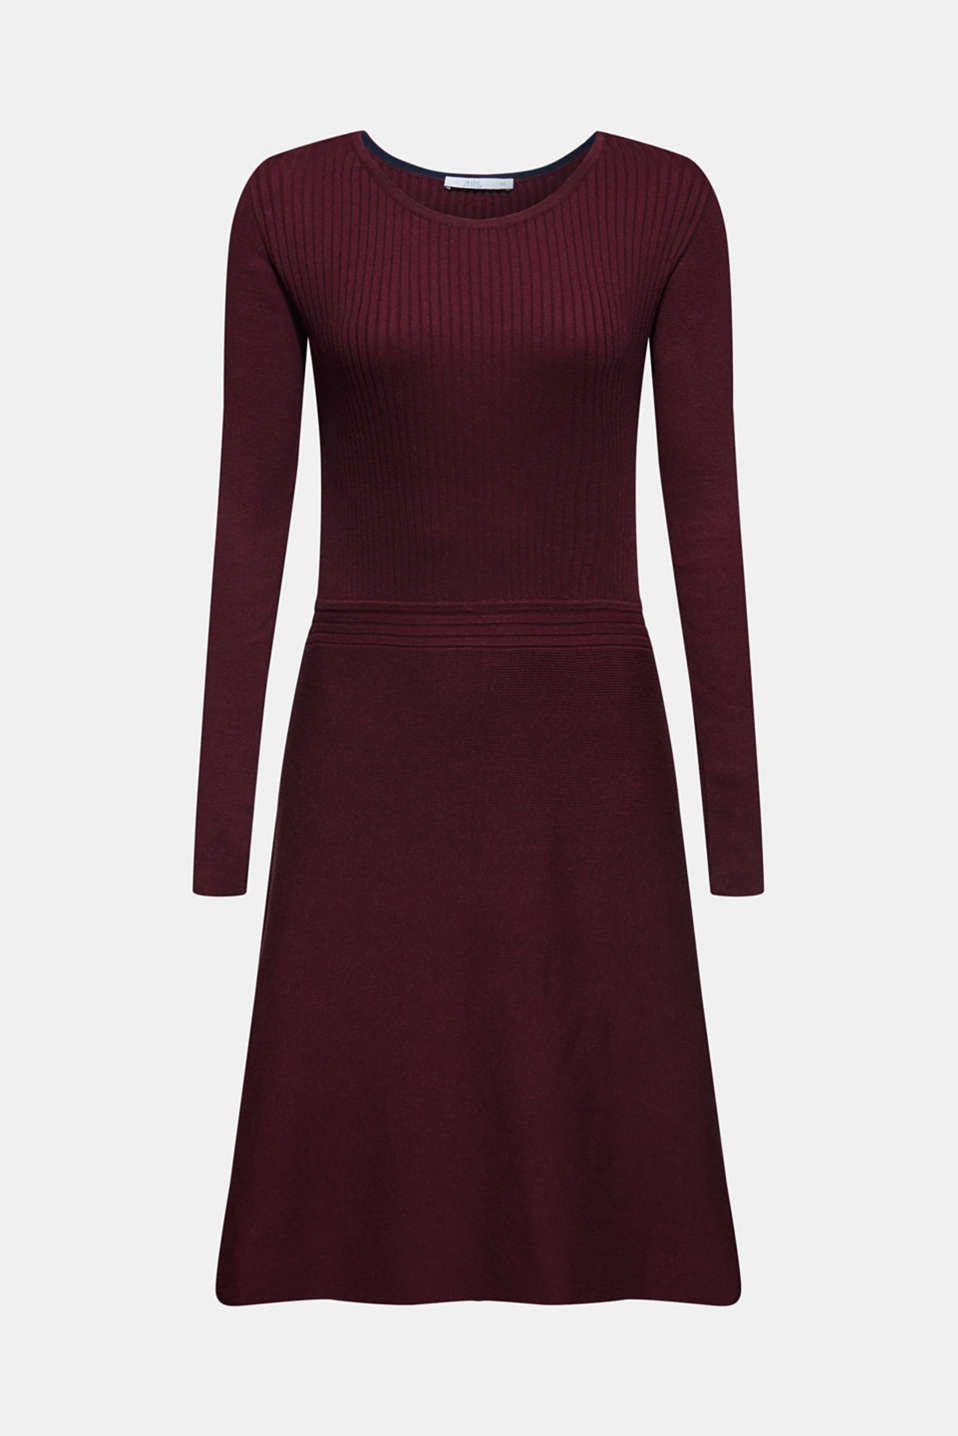 Knit dress with a ribbed texture, BORDEAUX RED, detail image number 6